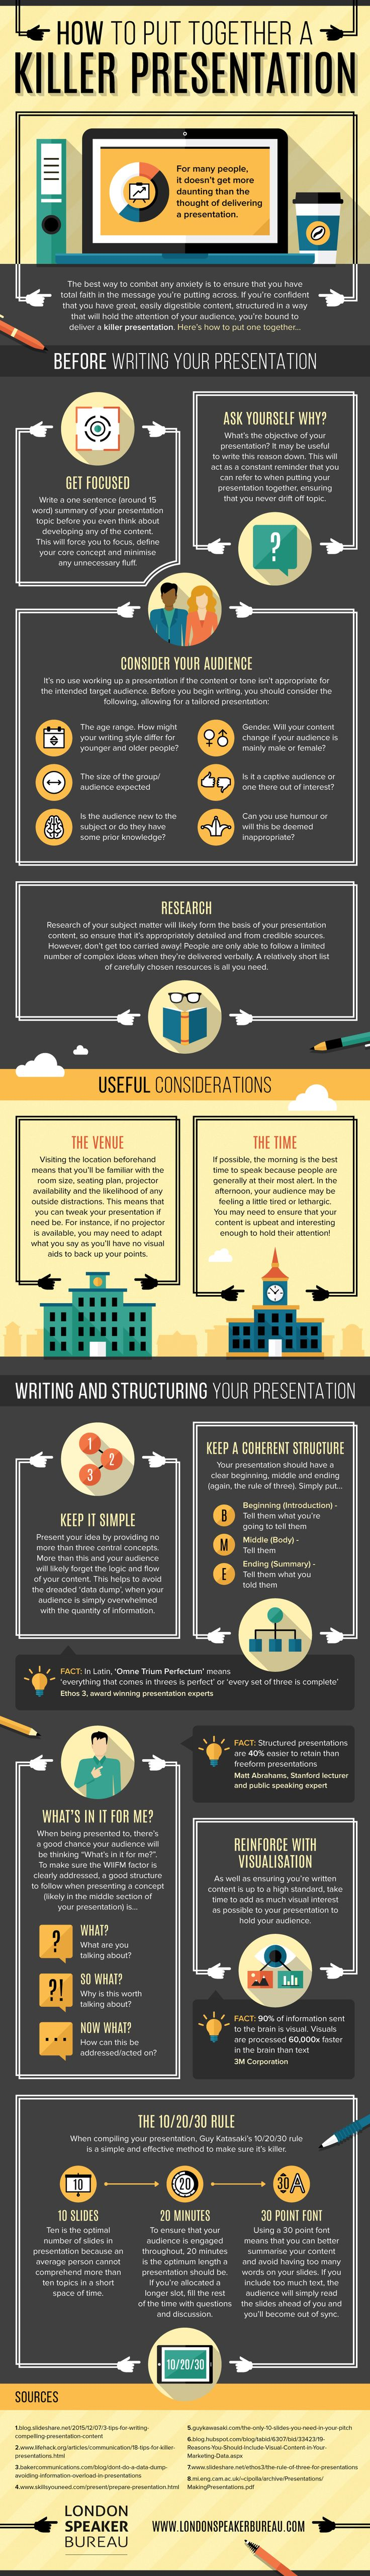 How to Put Together a Killer Presentation in 13 Si…